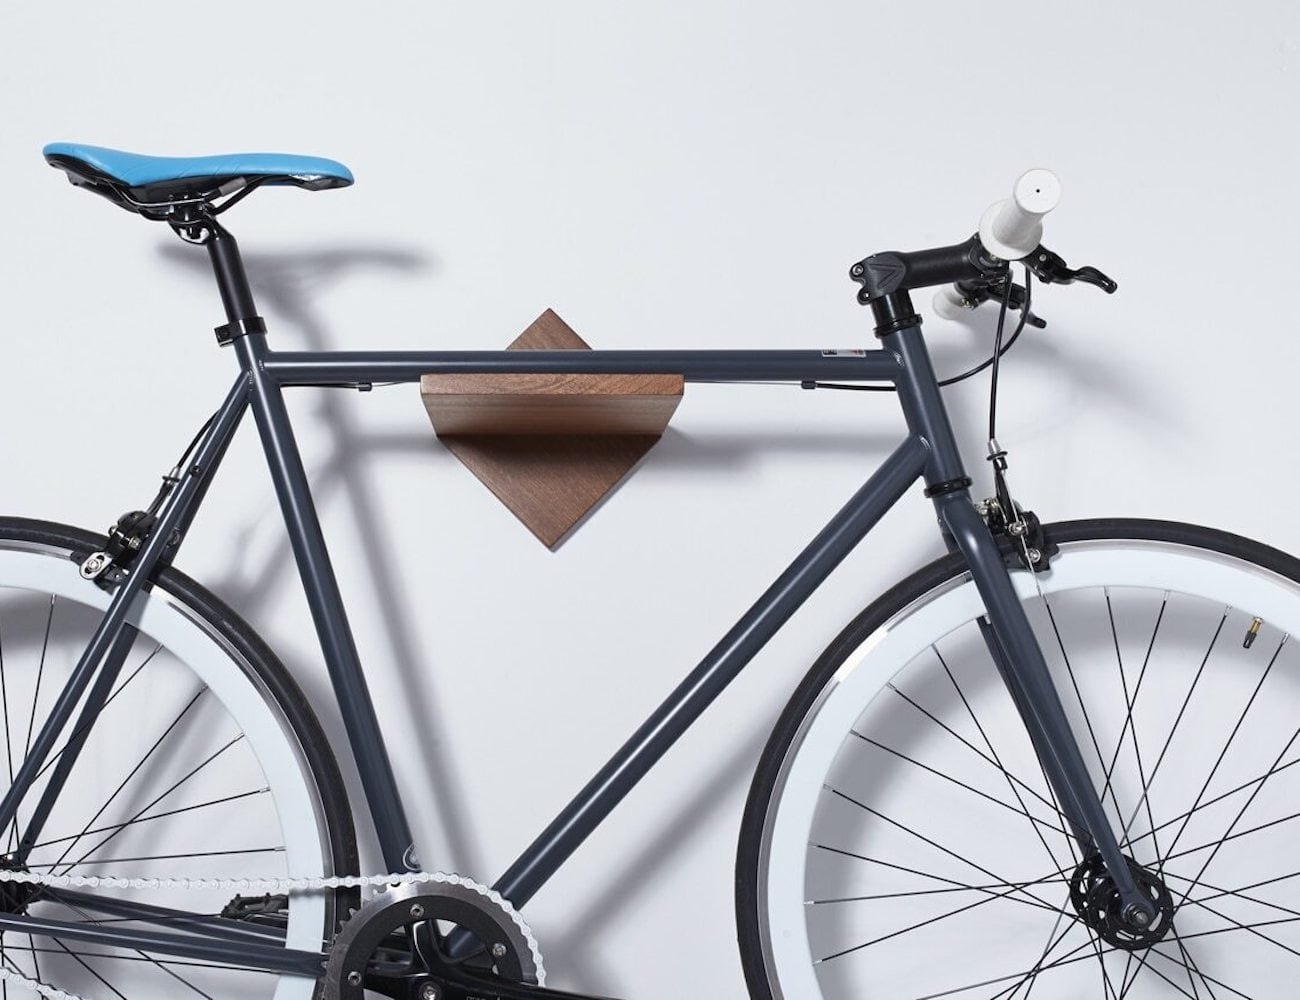 Loma Living Burnside minimalist bike rack is the coolest way to store your bike